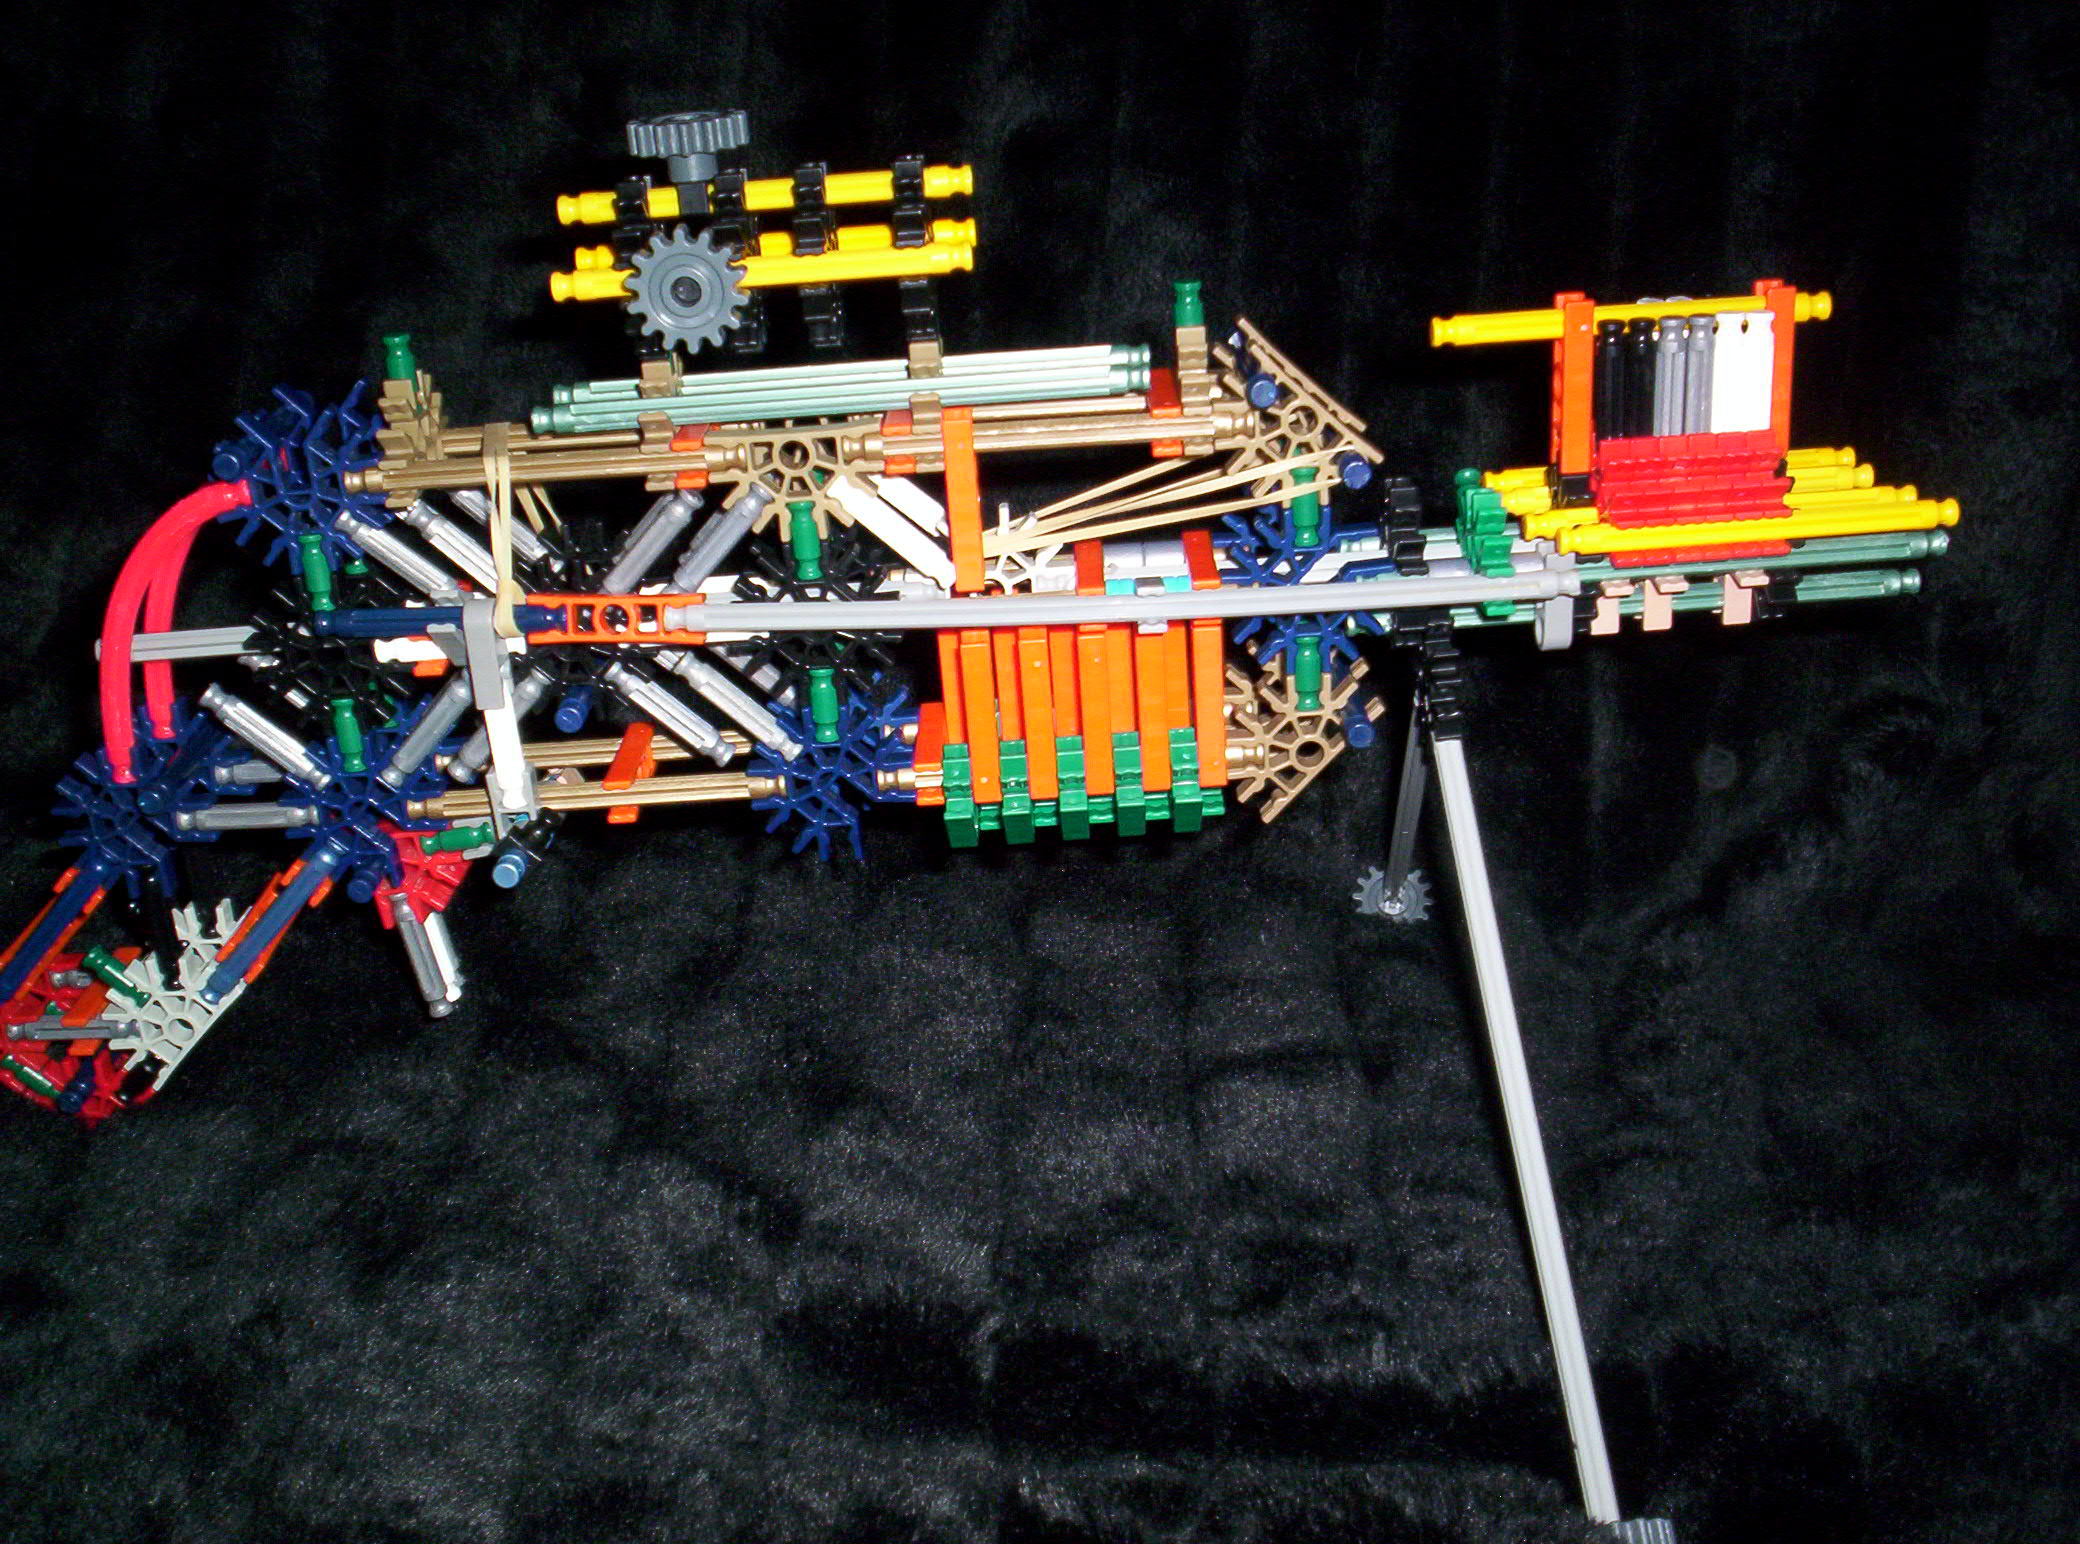 True Trigger Auto Loading Knex Rifle/Sniper, by bannana inventor